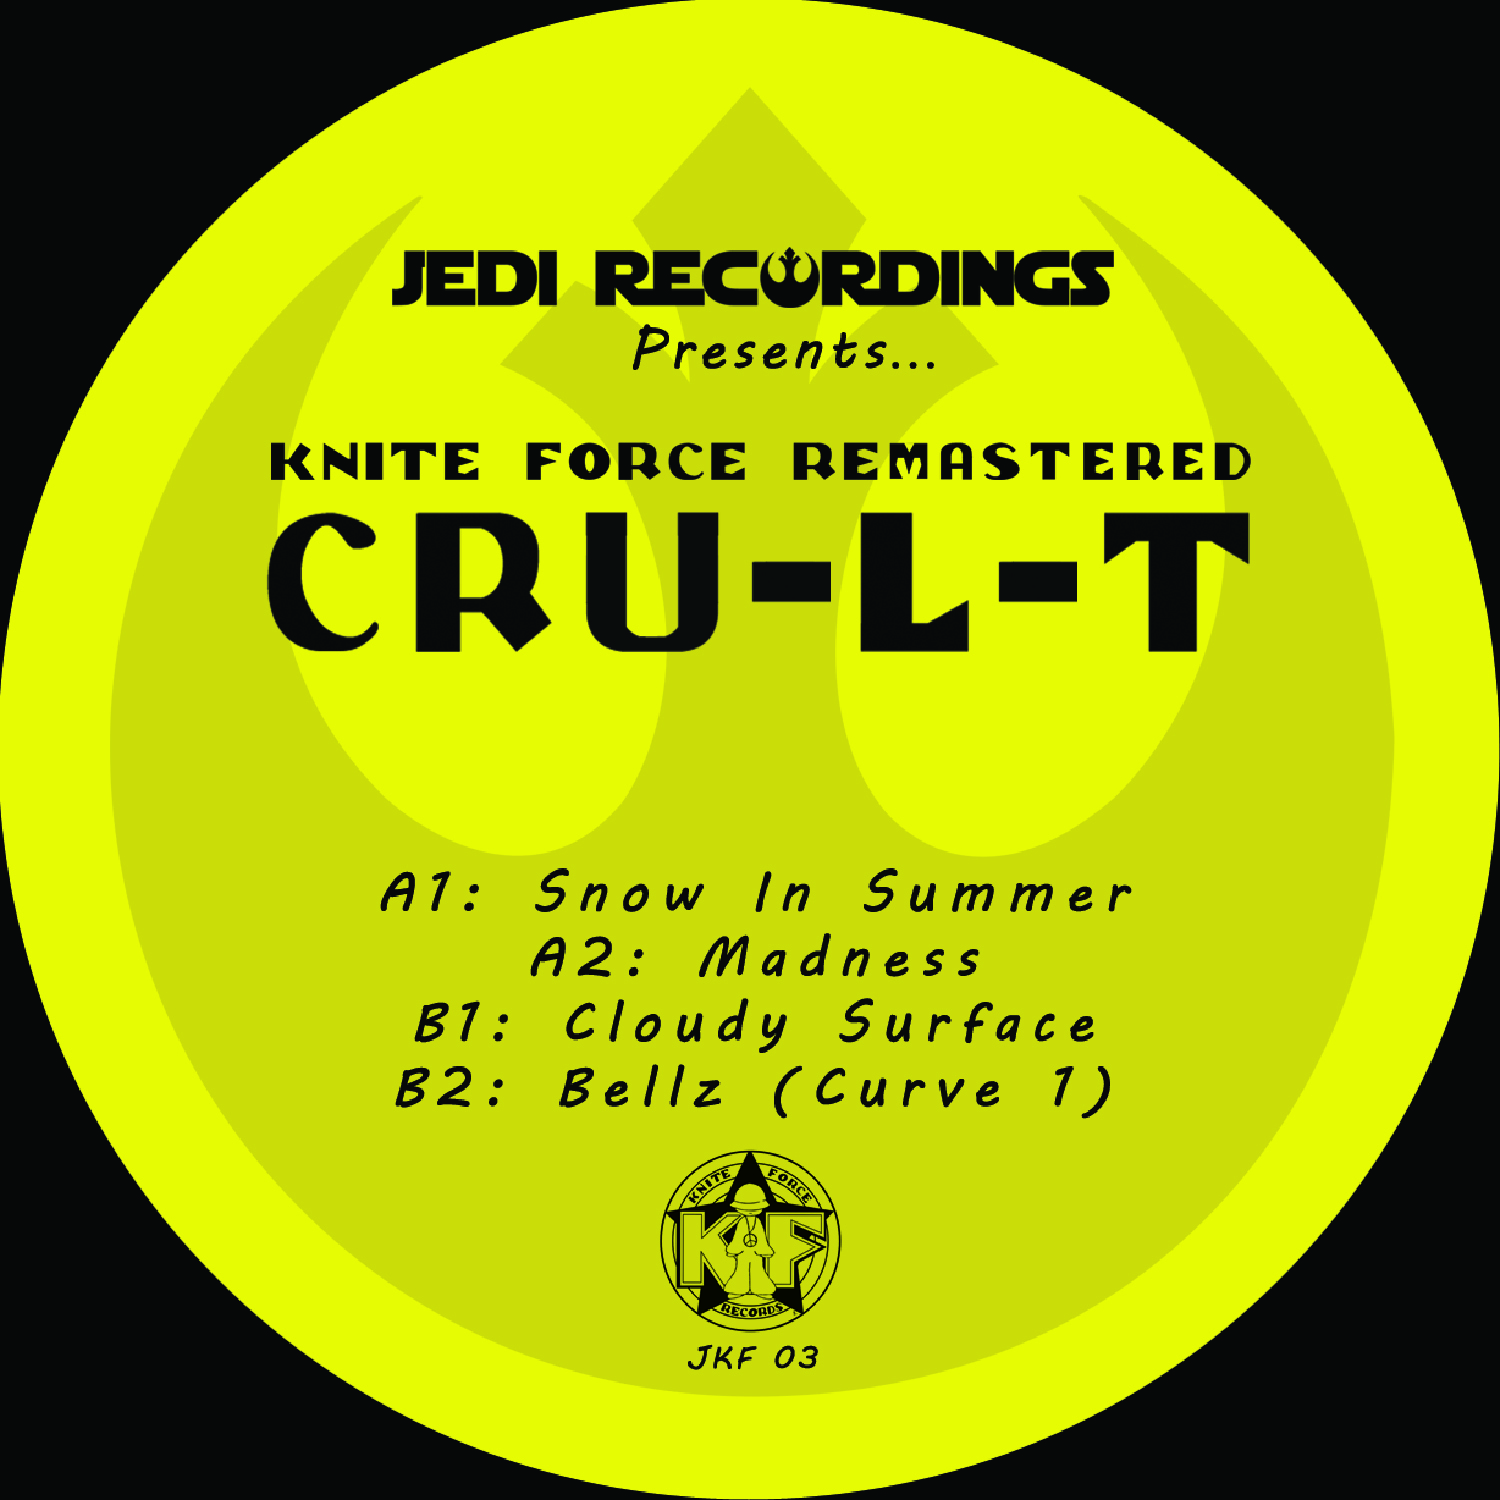 "[JKF03] Cru-l-t - Remastered (12"" Vinyl + Digital)"